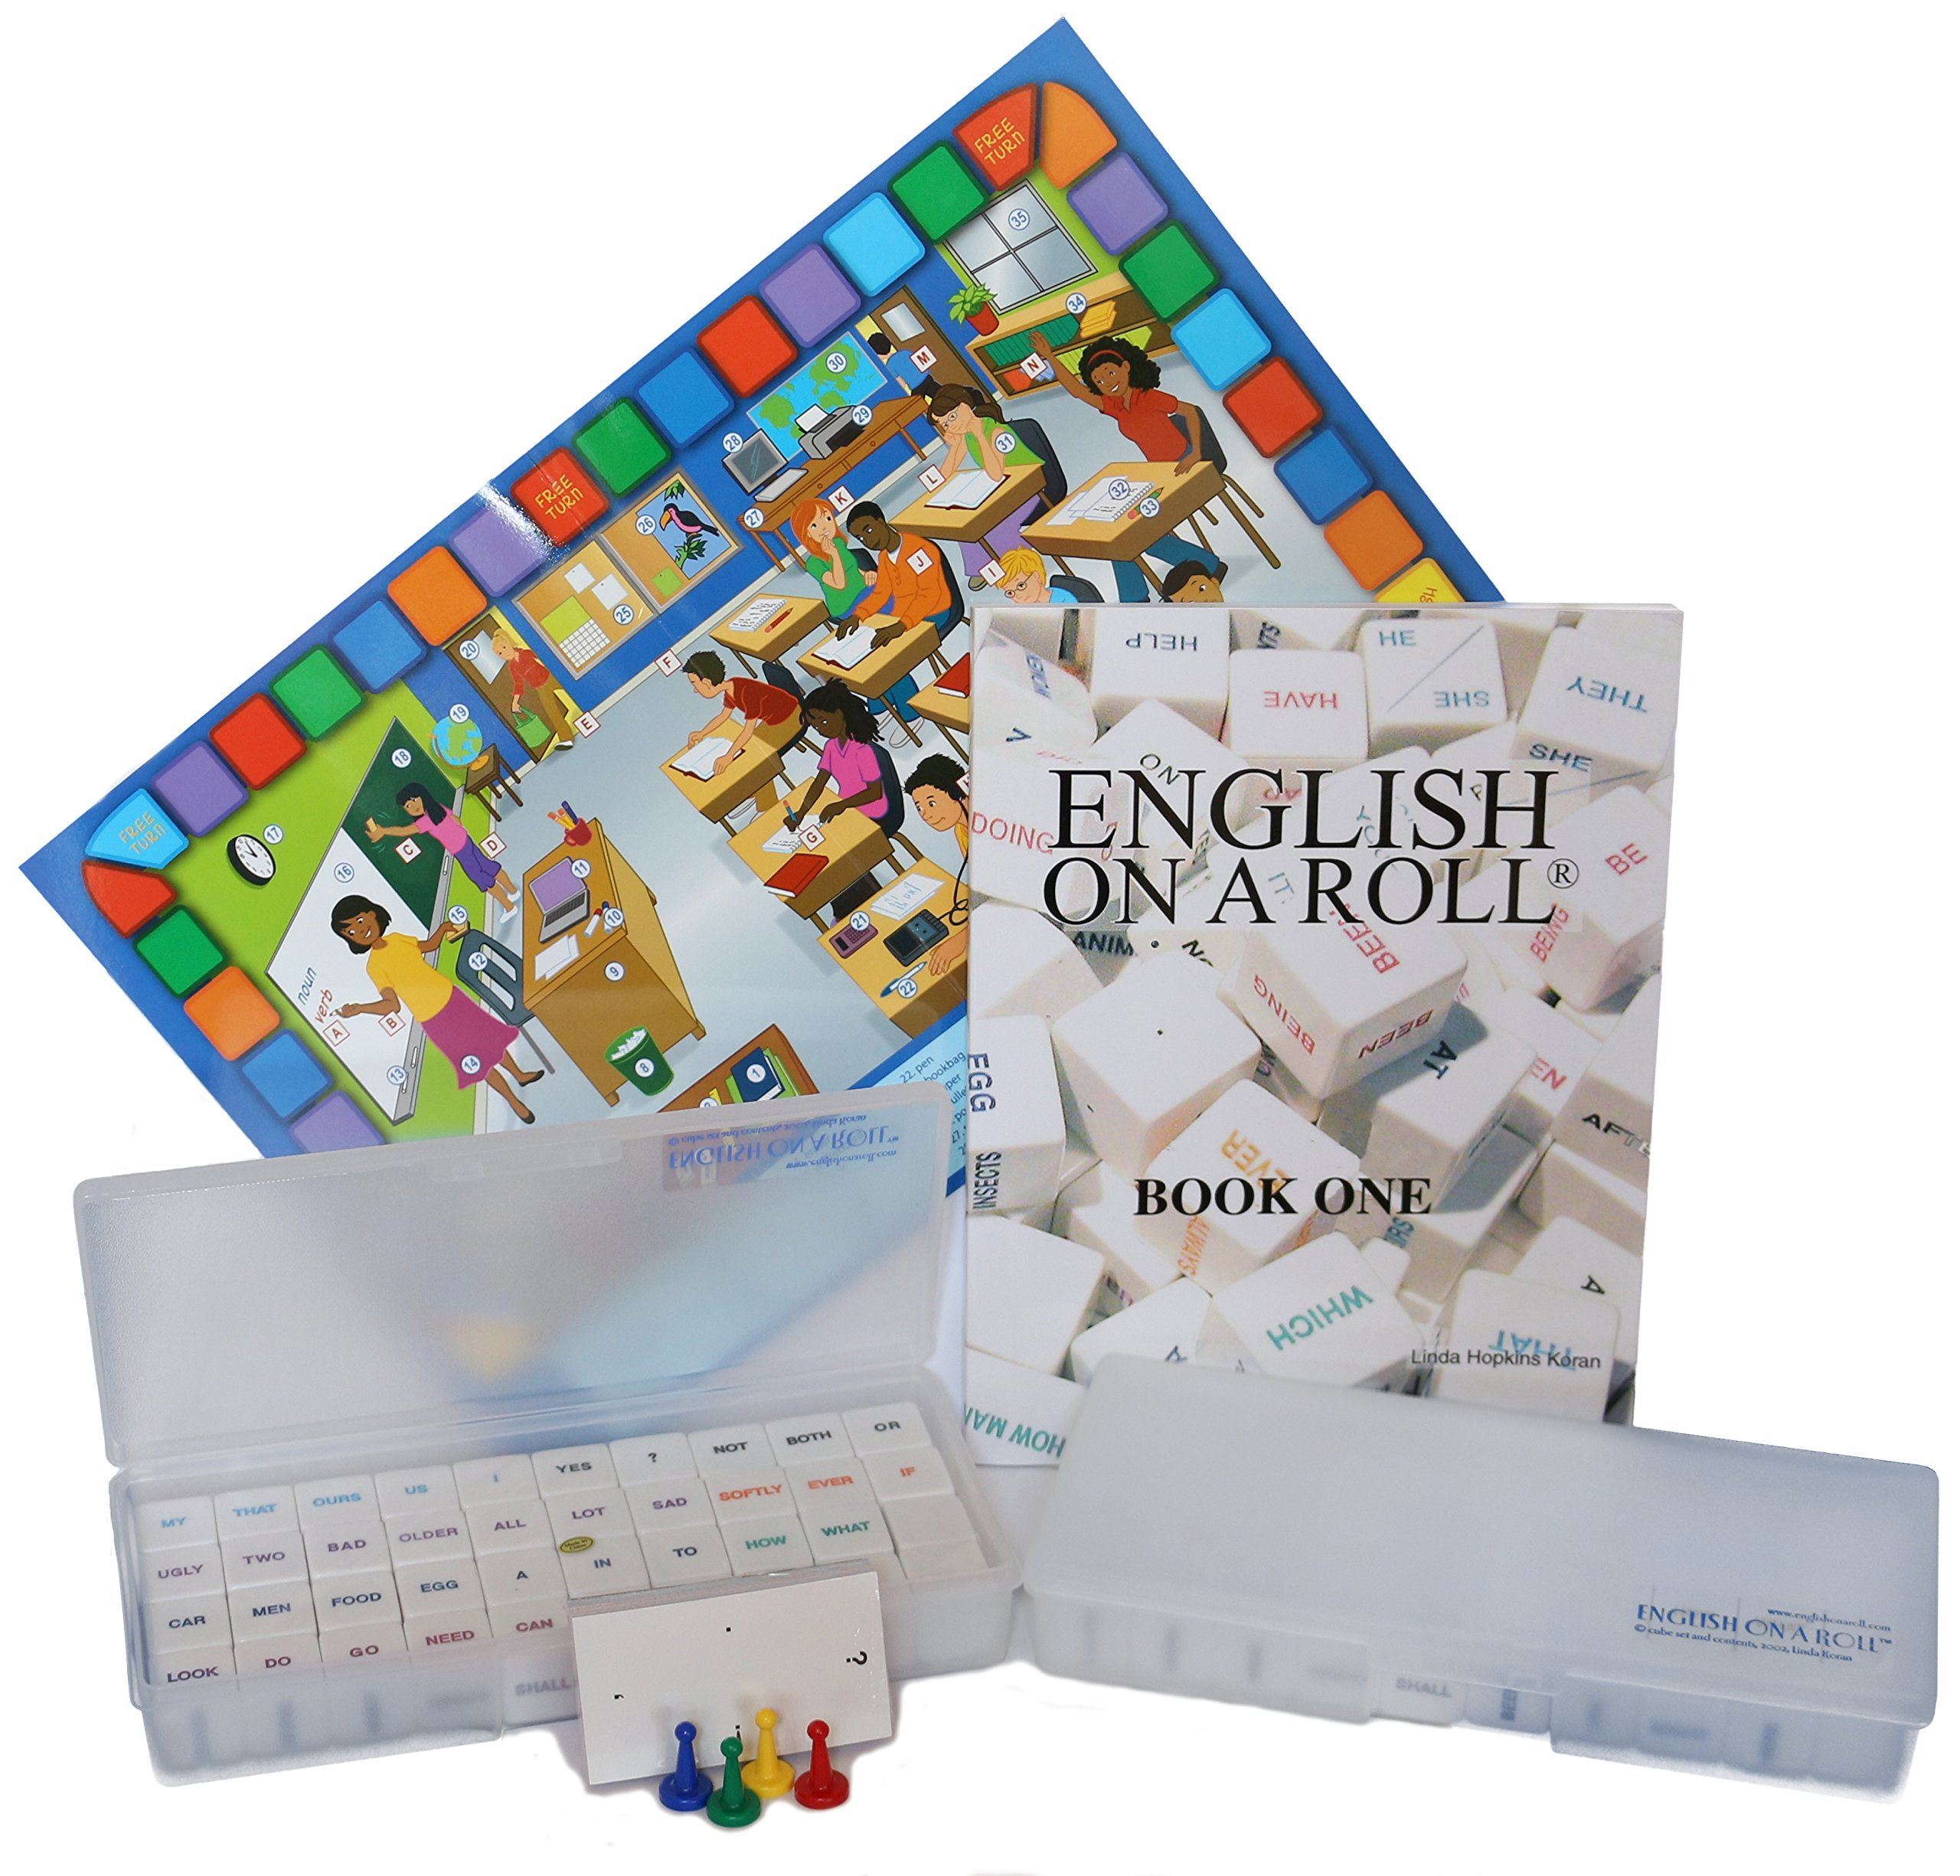 English on a Roll - English Grammar Teaching Method - 1 Manual, 2 Cube Sets - ESL EFL Classroom Game Combo